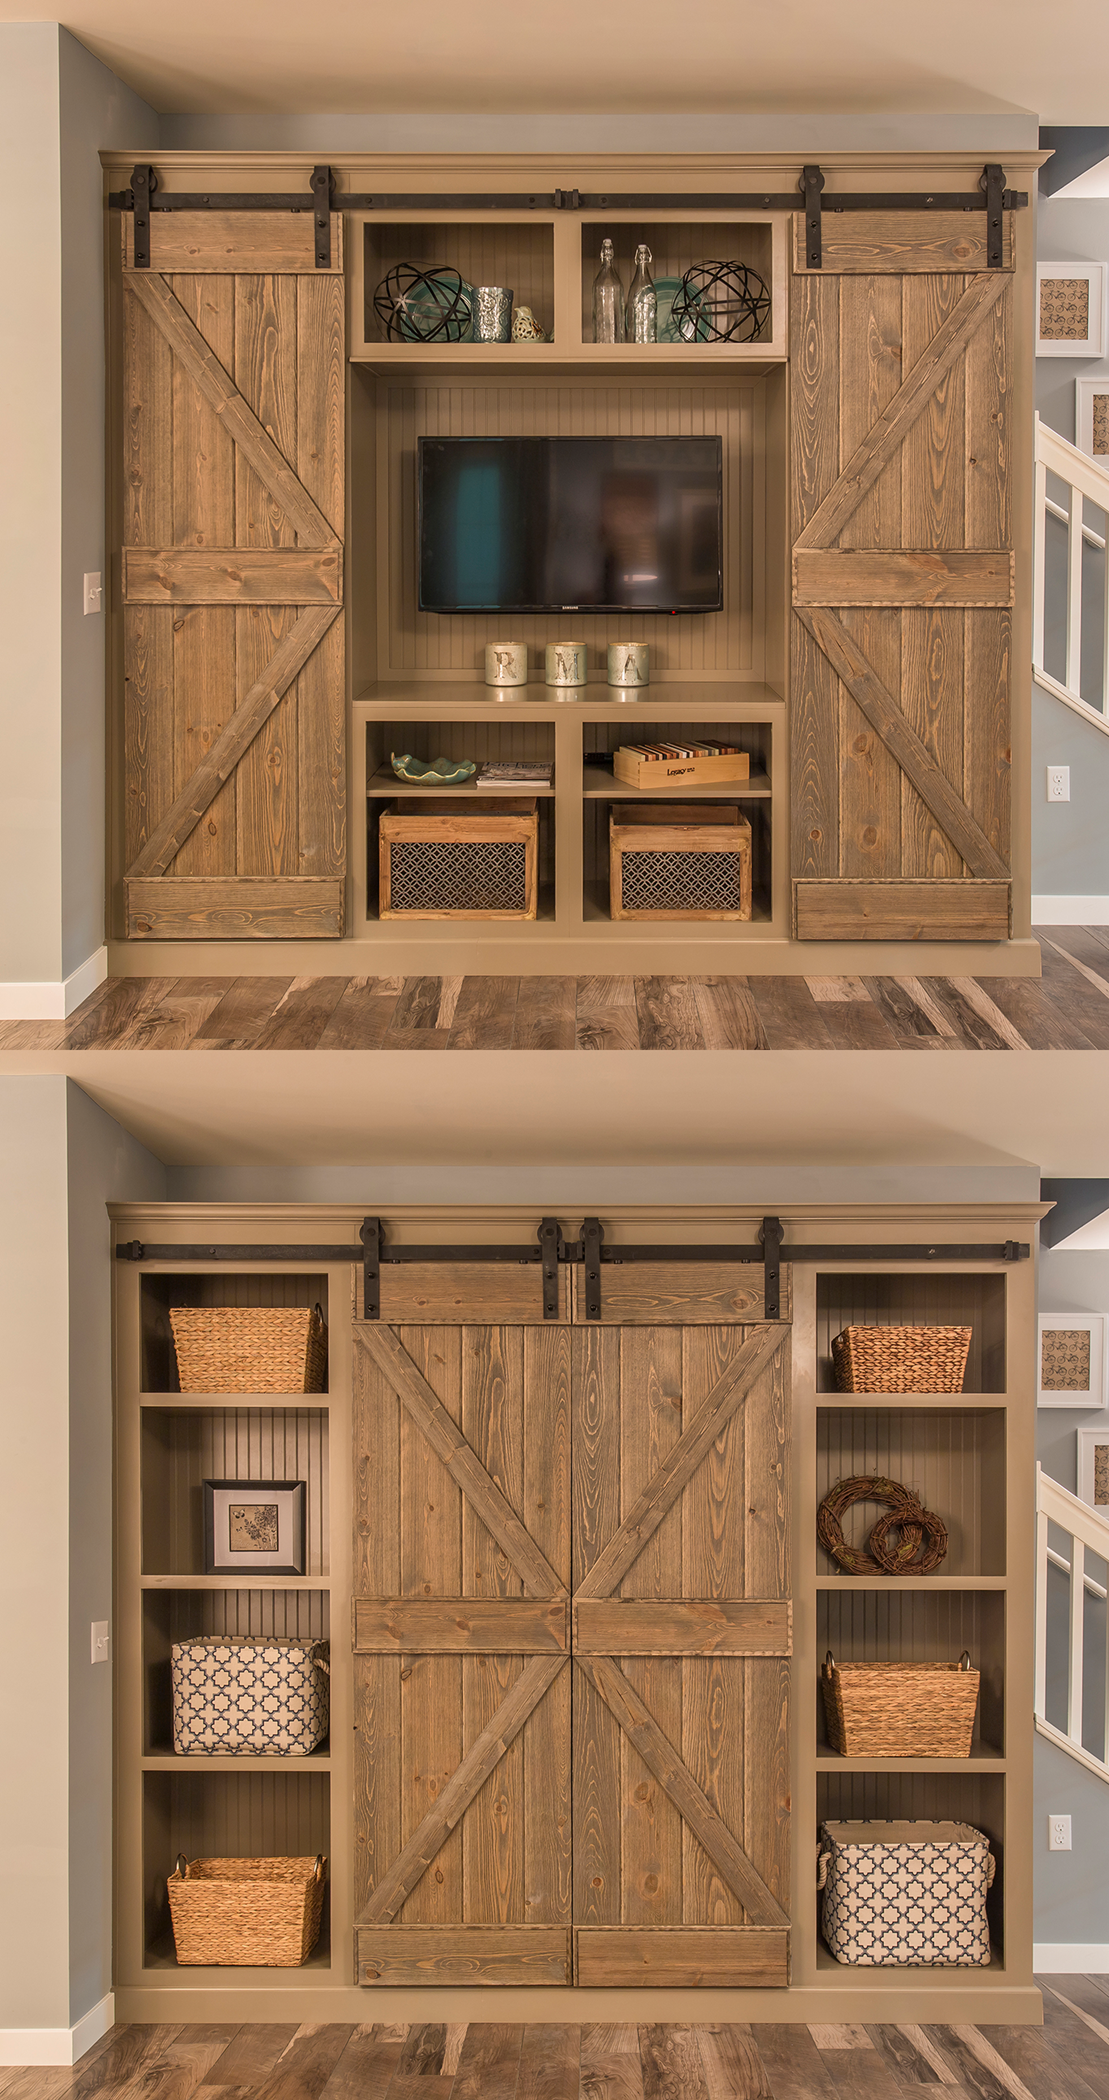 visit our showroom in stoney creek to see a beautiful piece similar to this from magnussen sliding barn doorsdouble